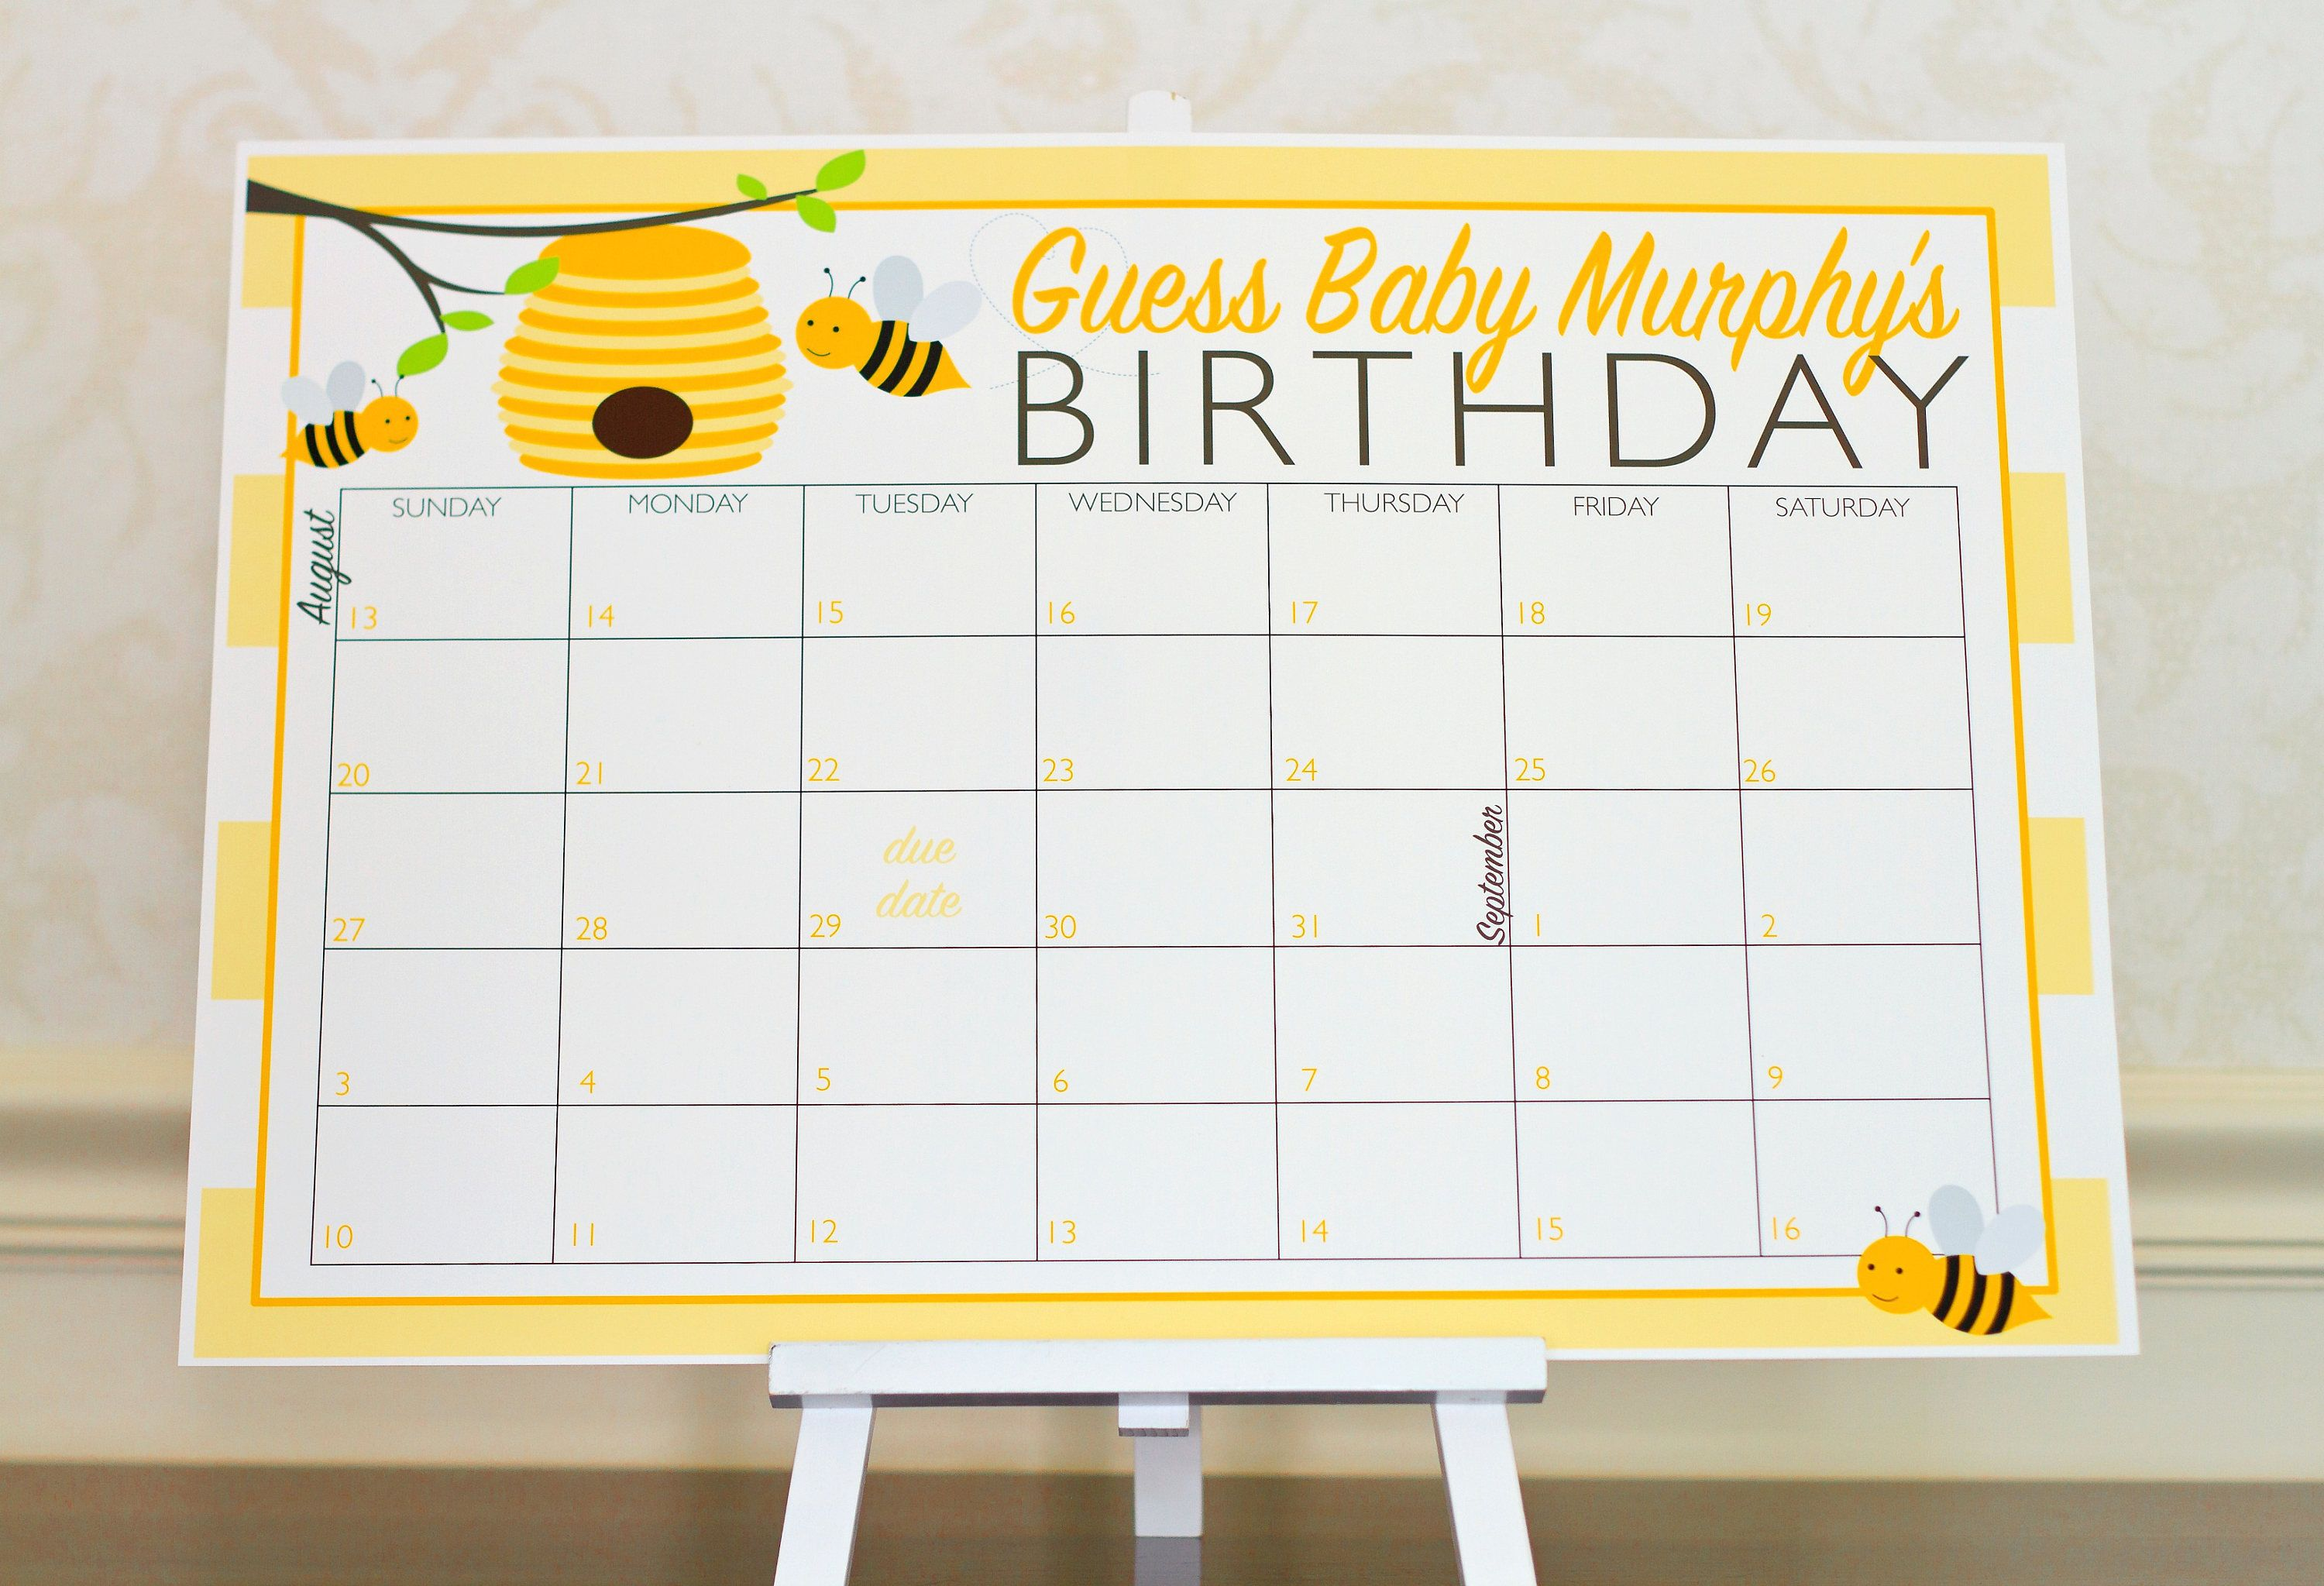 buzz plan decorations bridal a shower printable and how decor bumble bee cakes party photo baby invitations image to games boy ideas